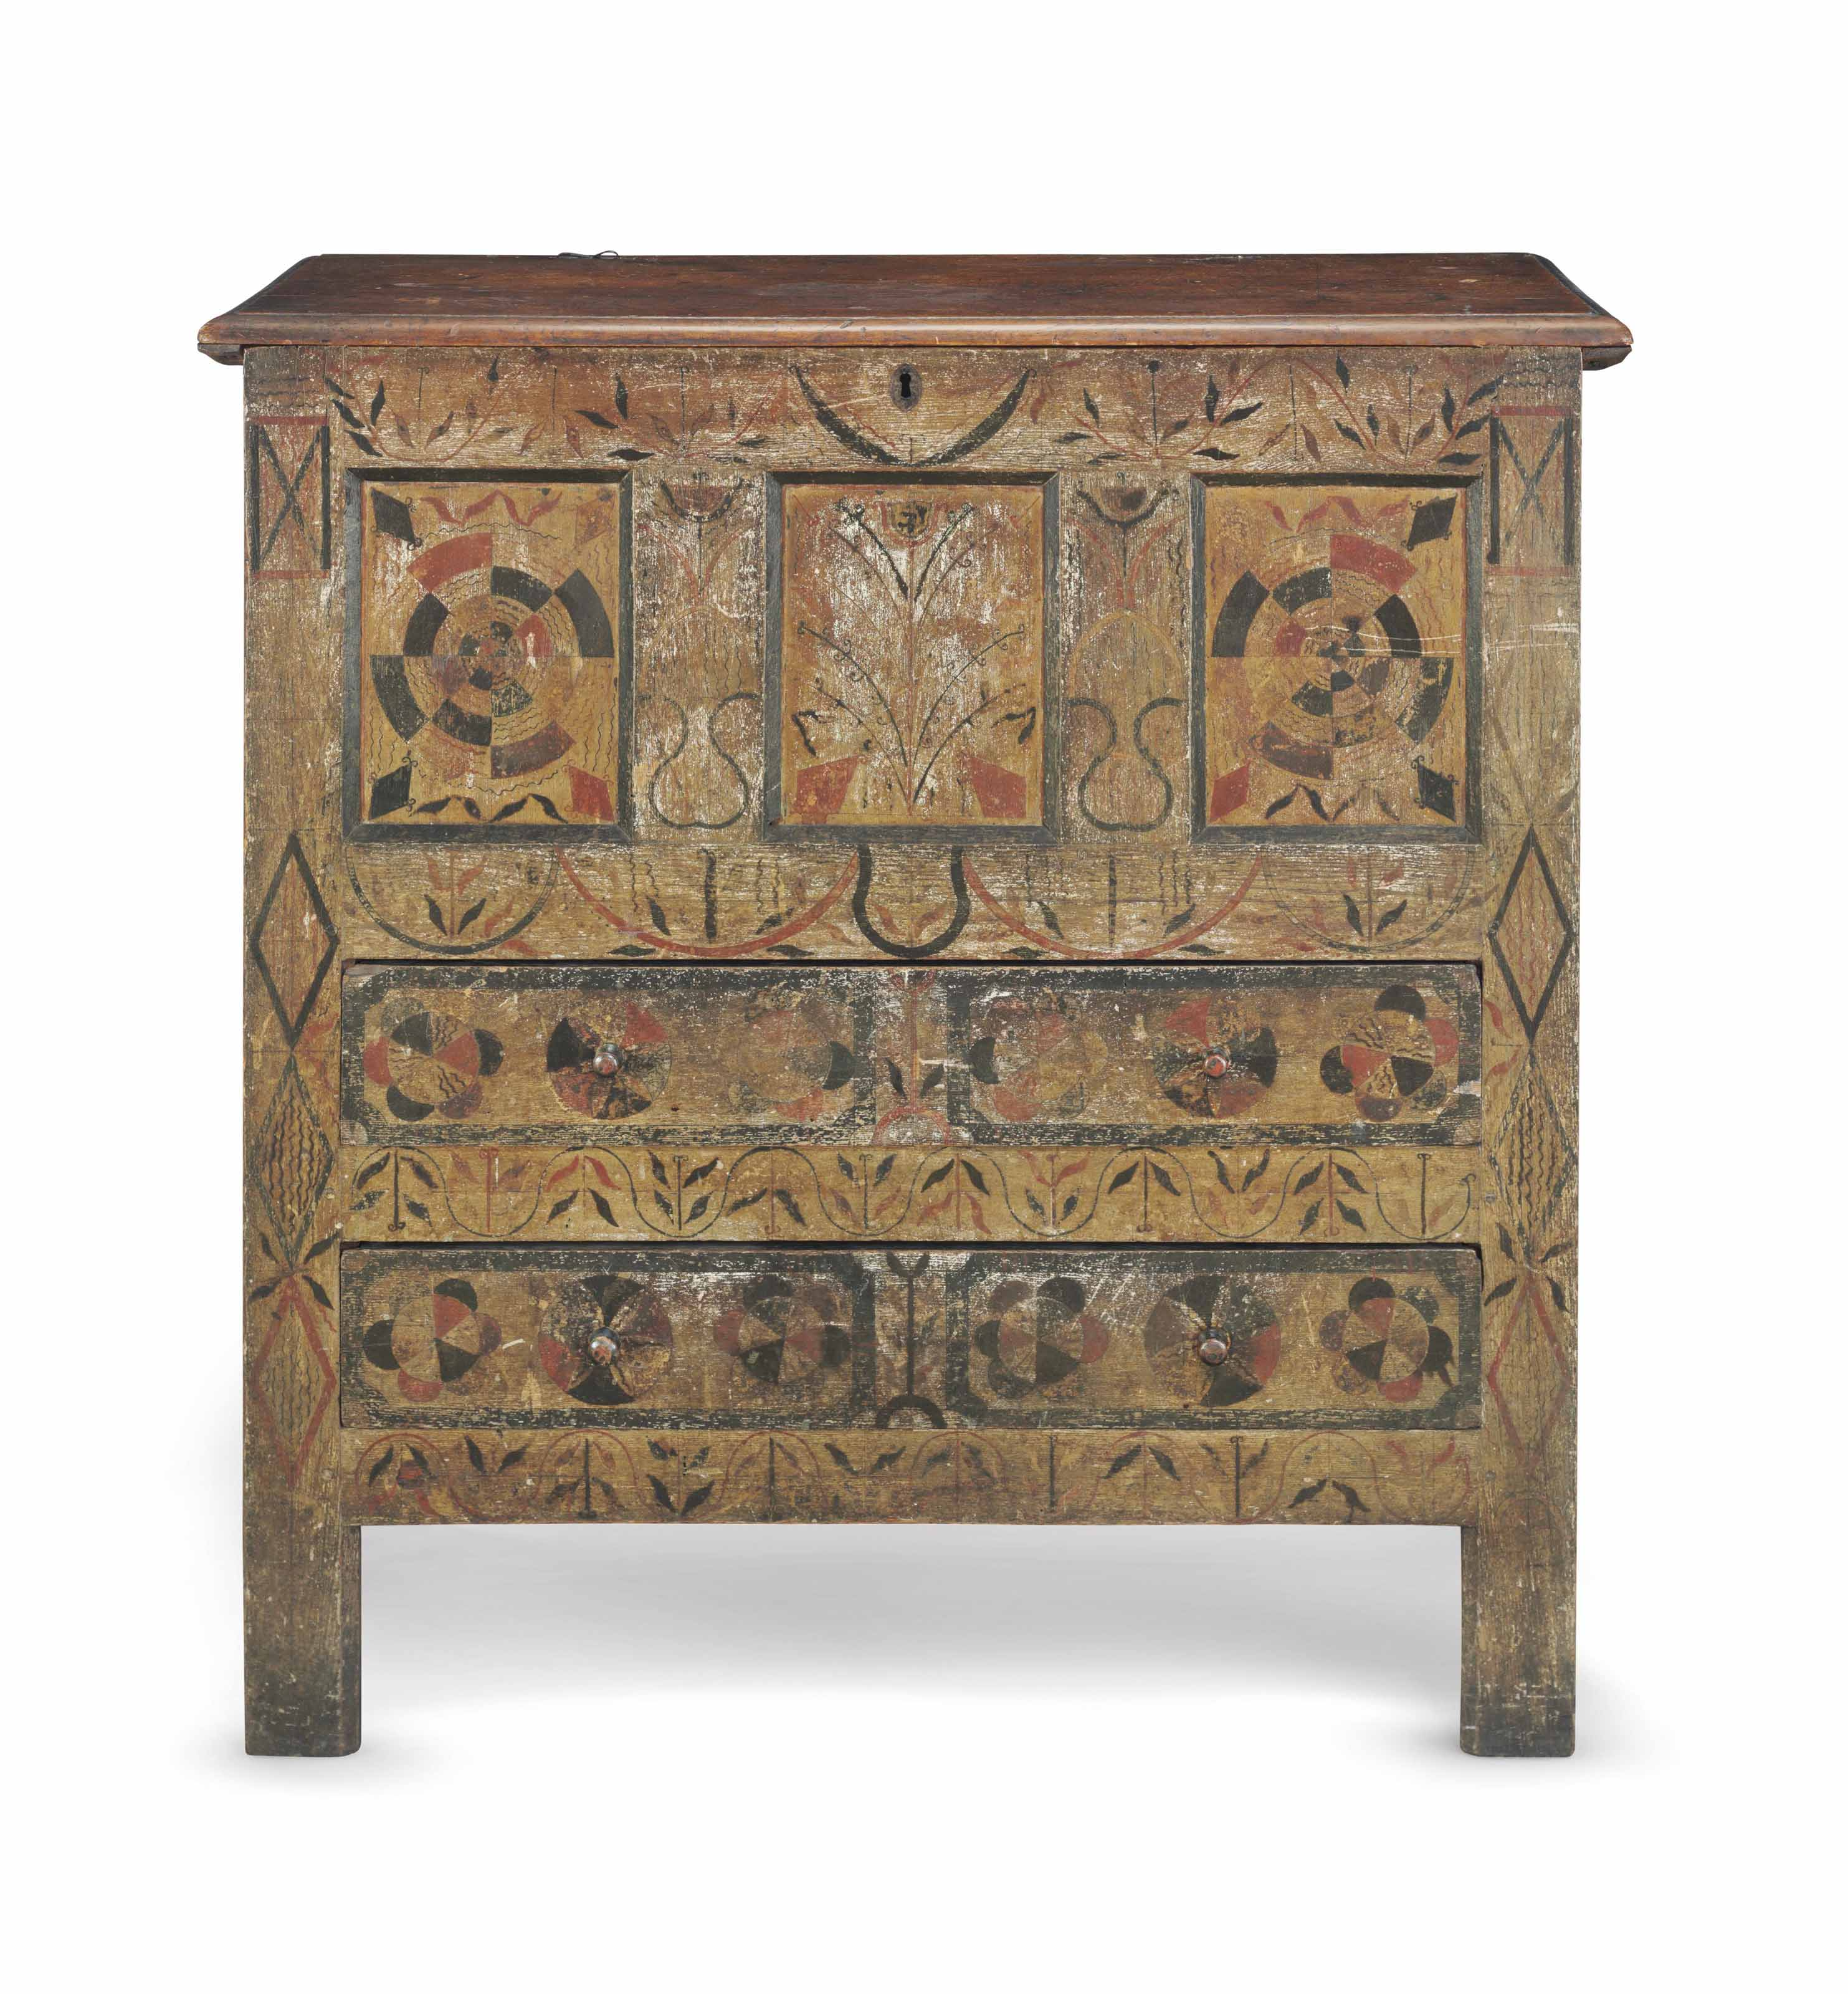 "THE EXTRAORDINARY JOINED OAK AND PINE POLYCHROME ""HADLEY"" CHEST-WITH-DRAWERS"